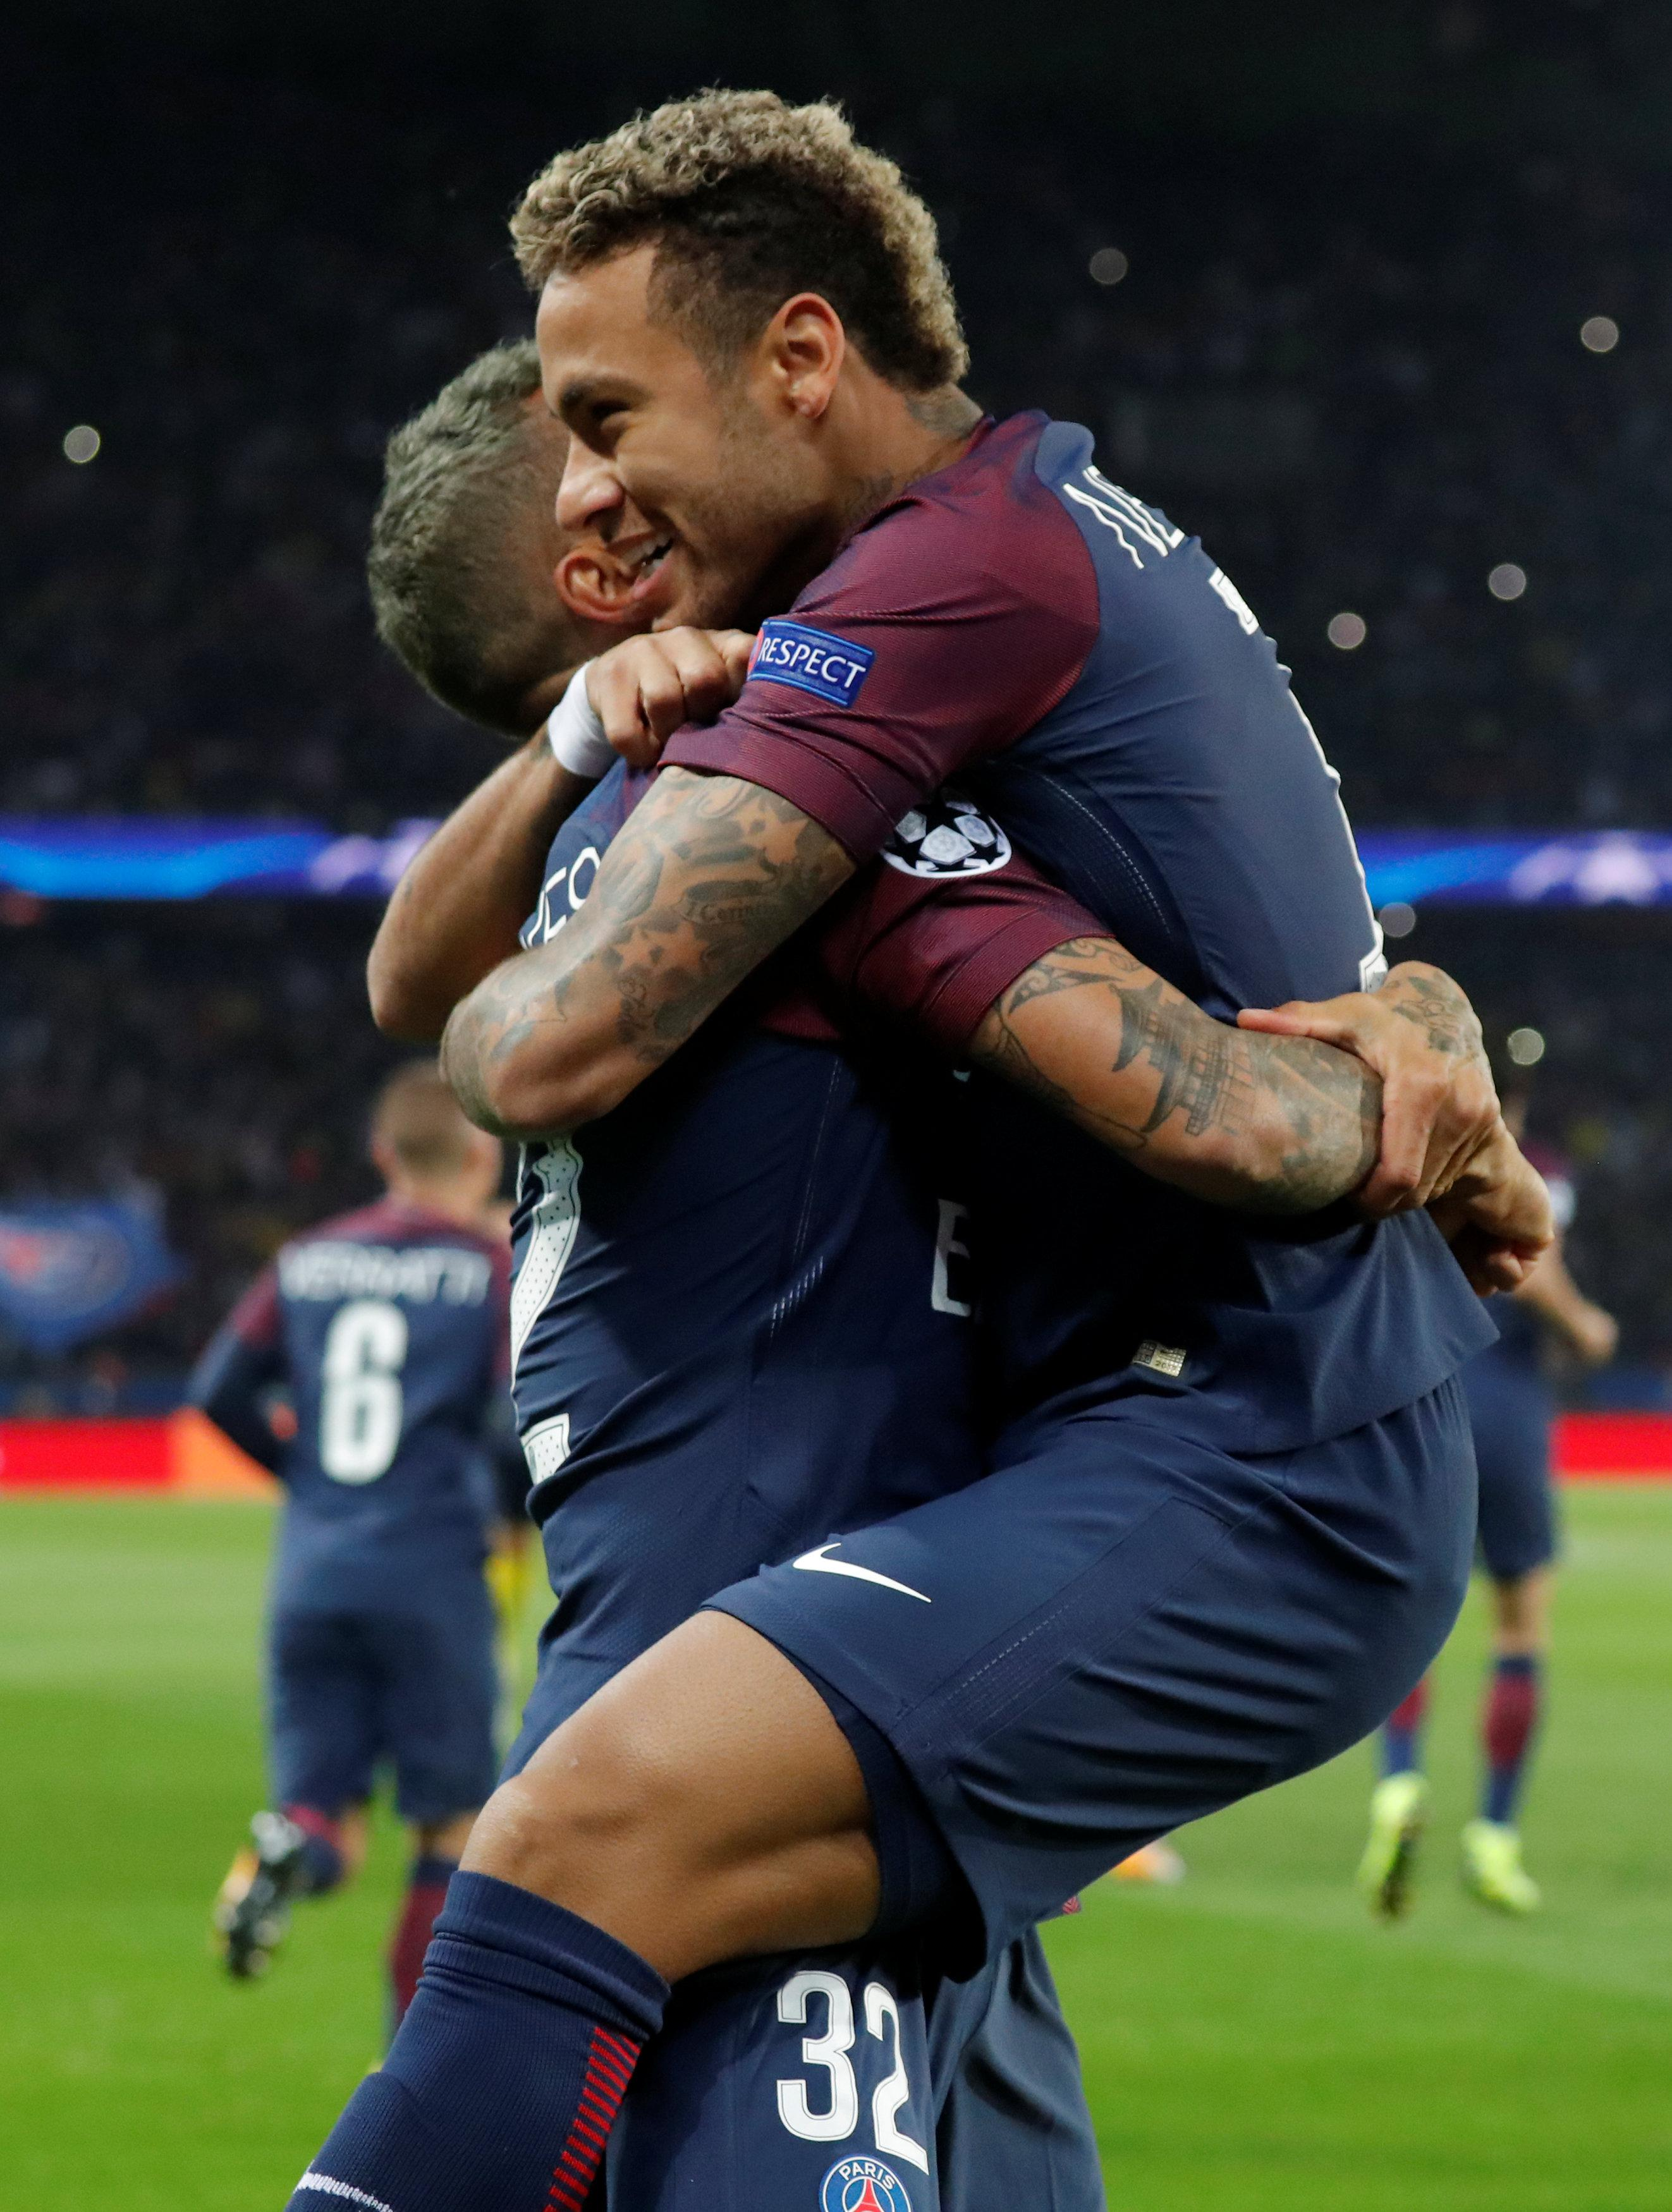 Compare that to Neymar's celebration of Alves' goal